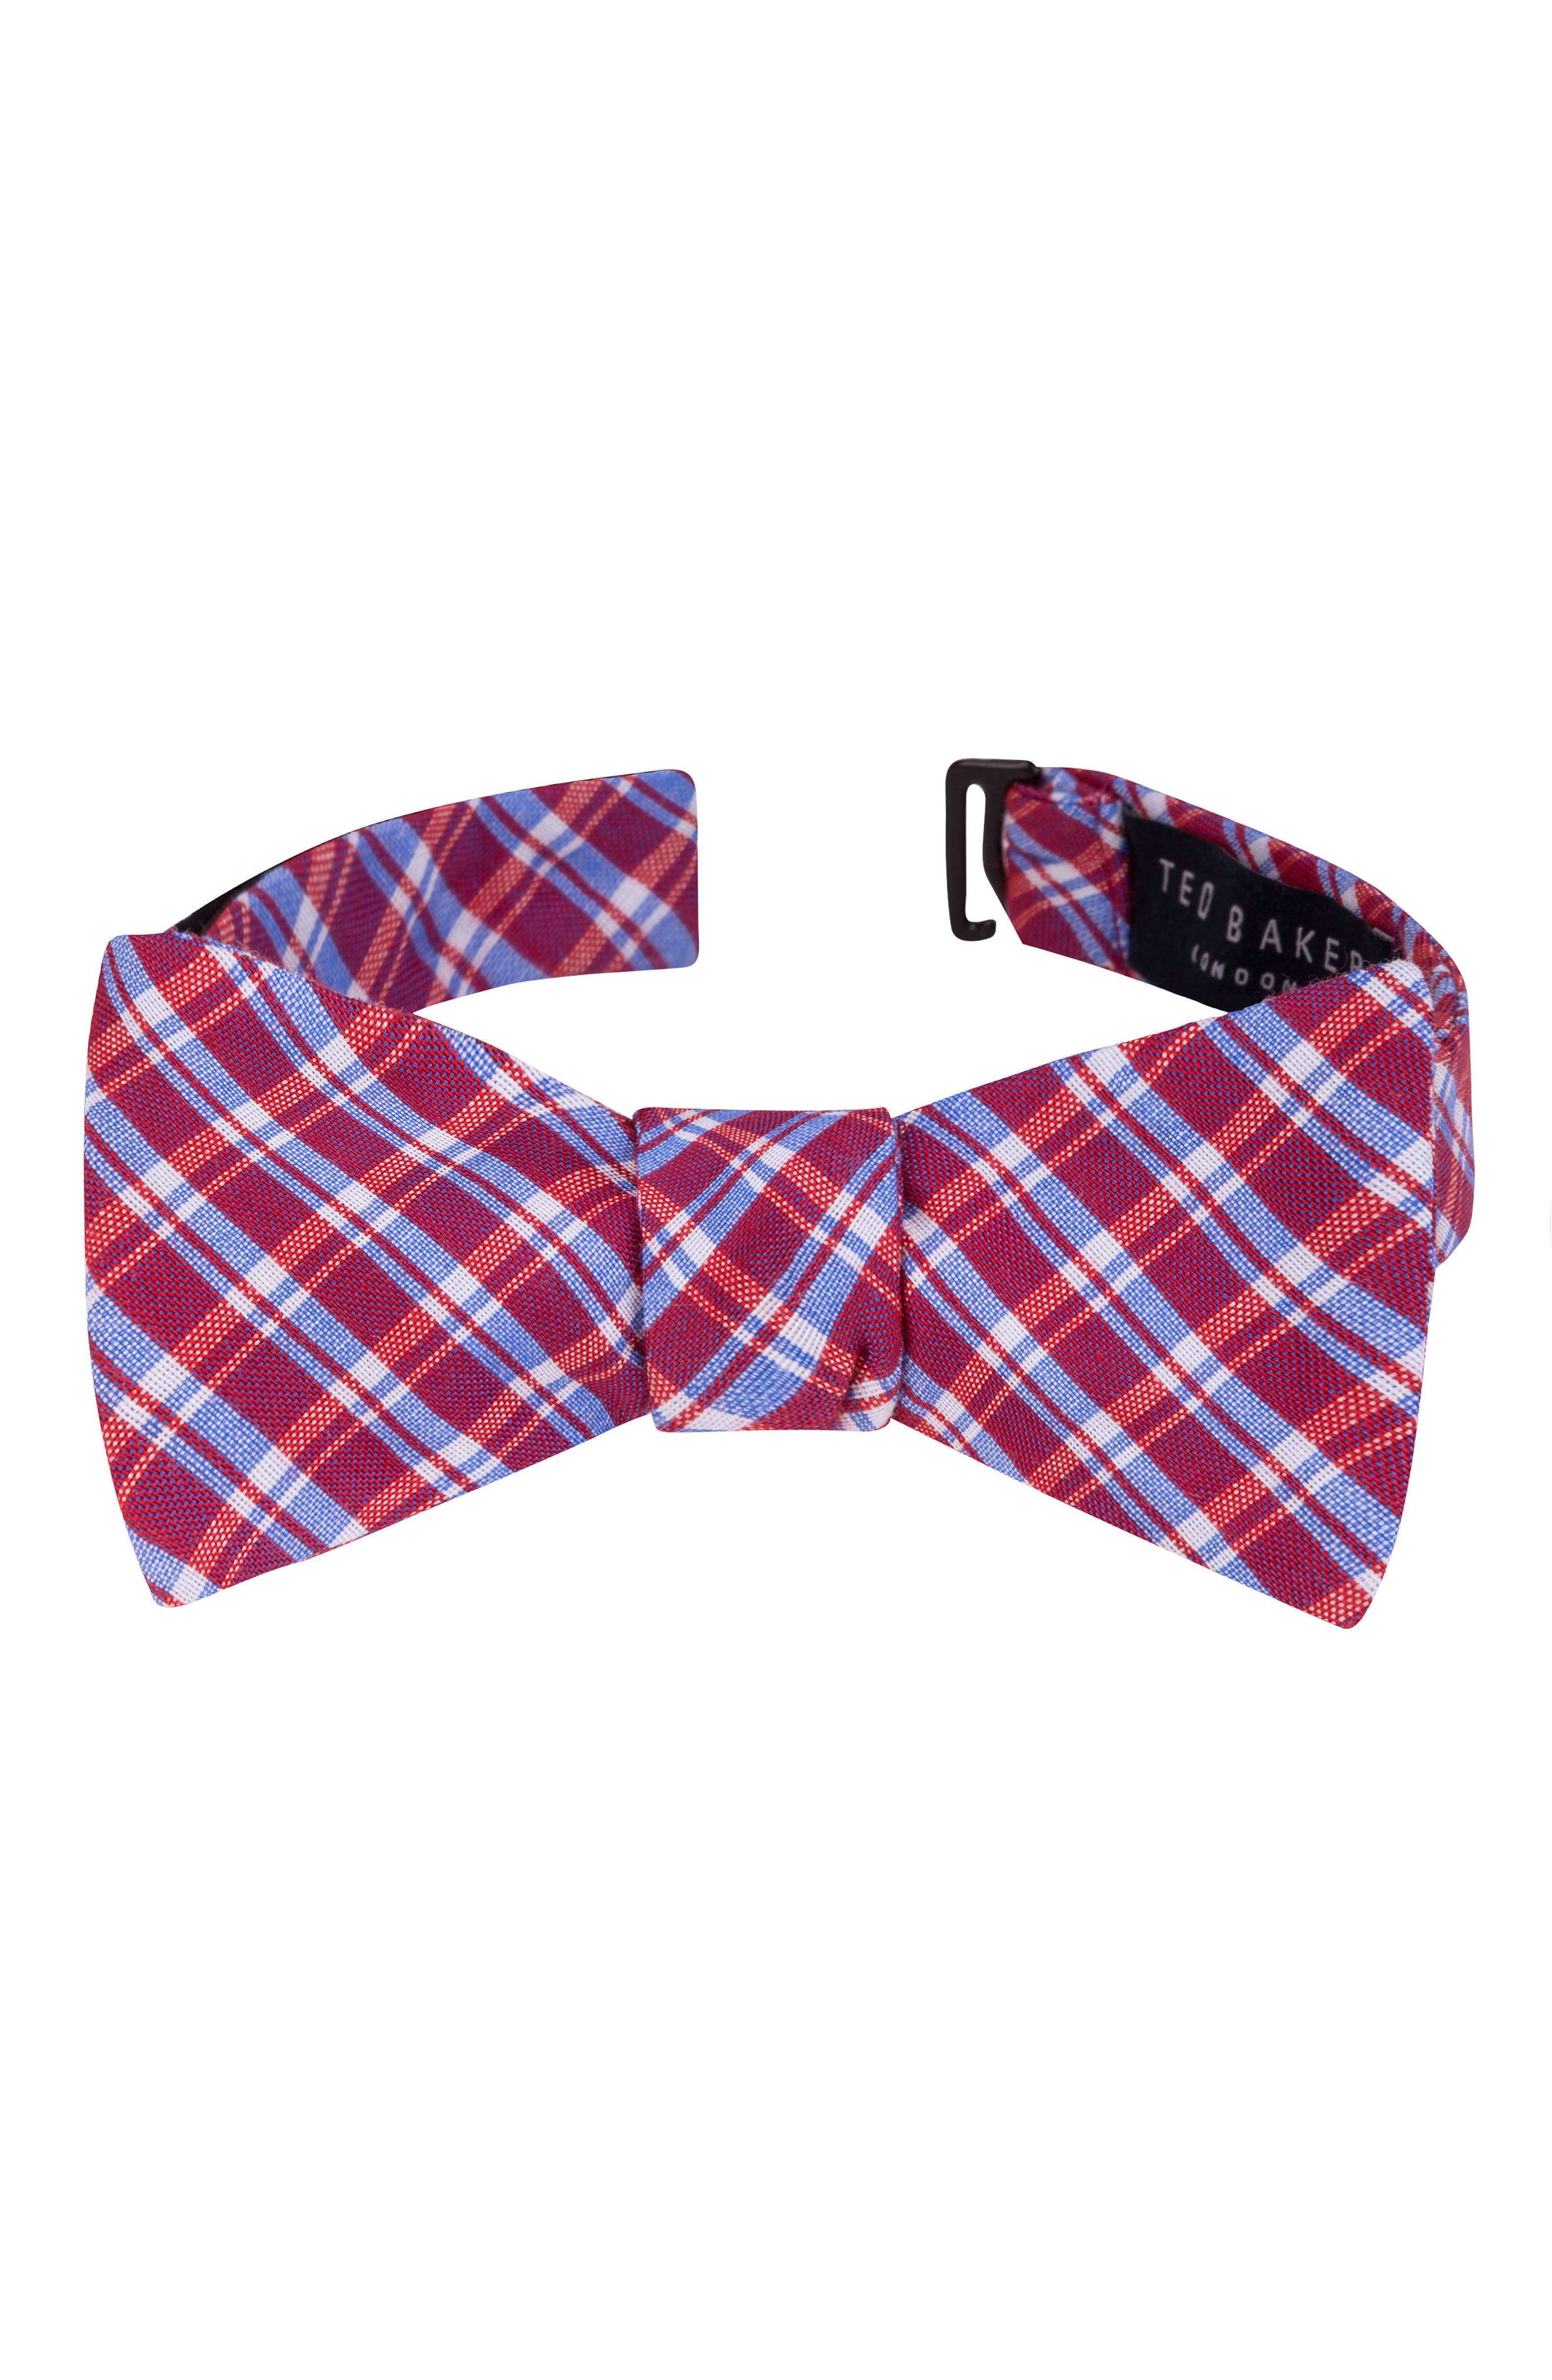 TED BAKER LONDON Plaid Cotton & Silk Bow Tie